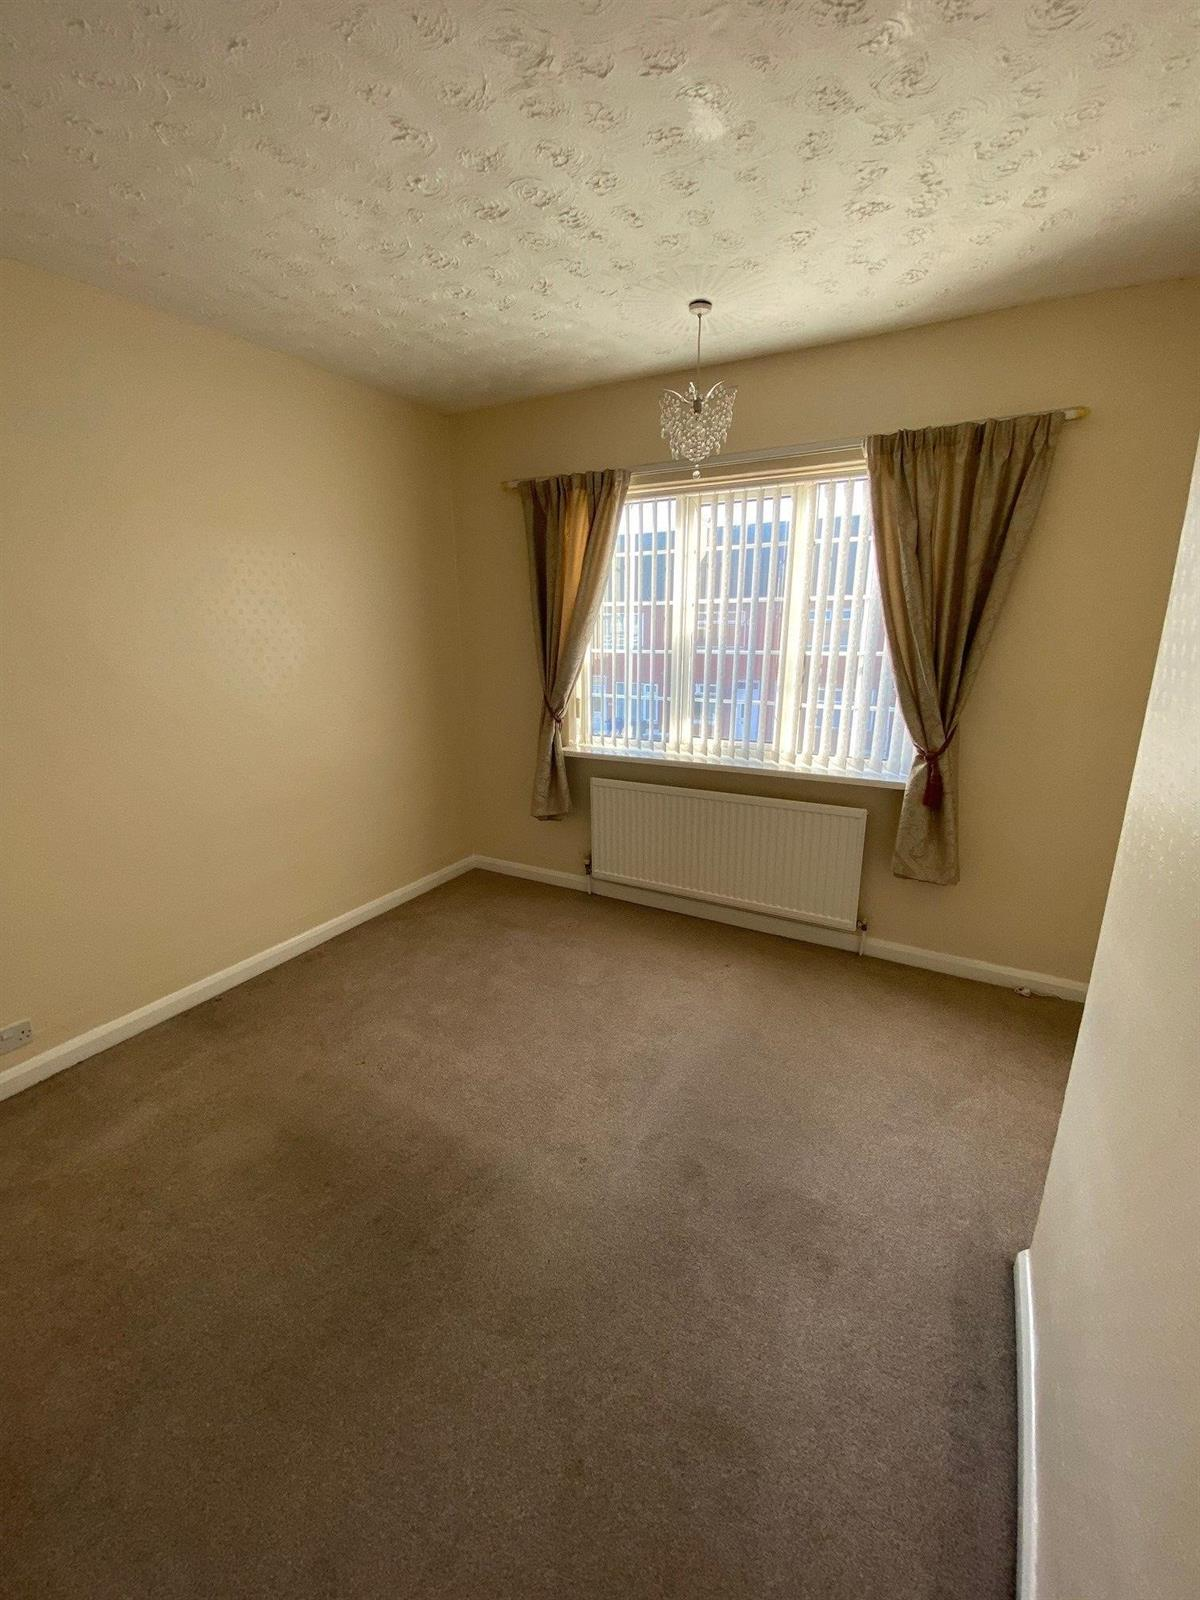 To Let - 2 bedroom Terraced house, Riviera Parade, Bentley, Doncaster - £525 pcm